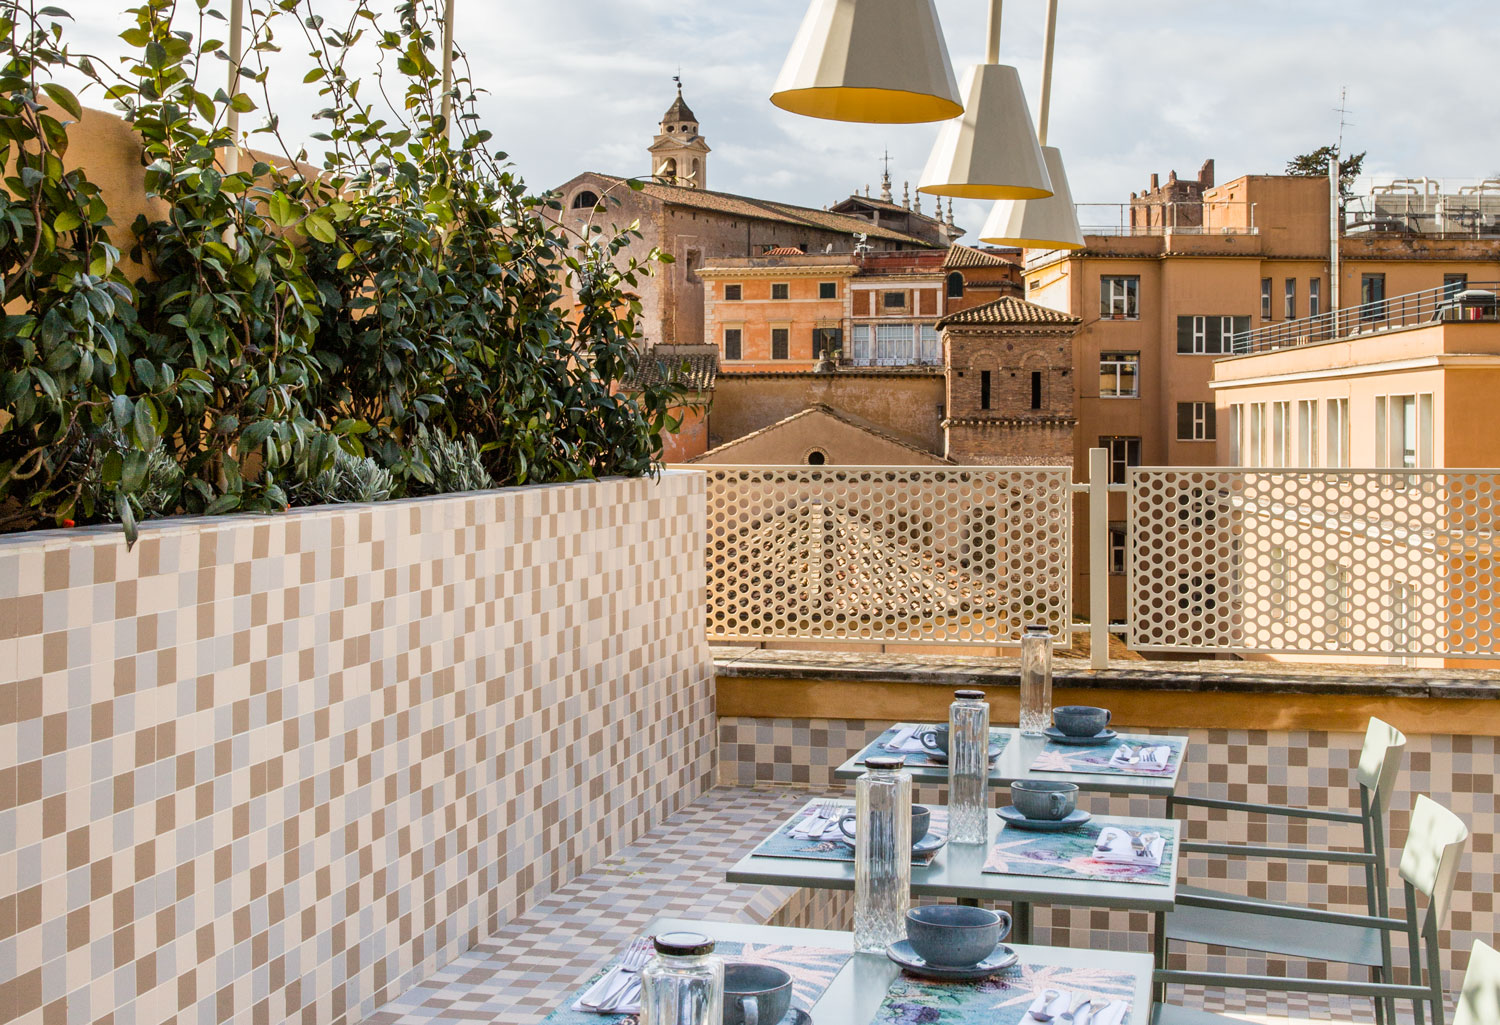 Redefining Hospitality Design With This Vibrant Hotel In Rome - WWW.AUTHENTICINTERIOR.COM design studio & blog design studio & blog